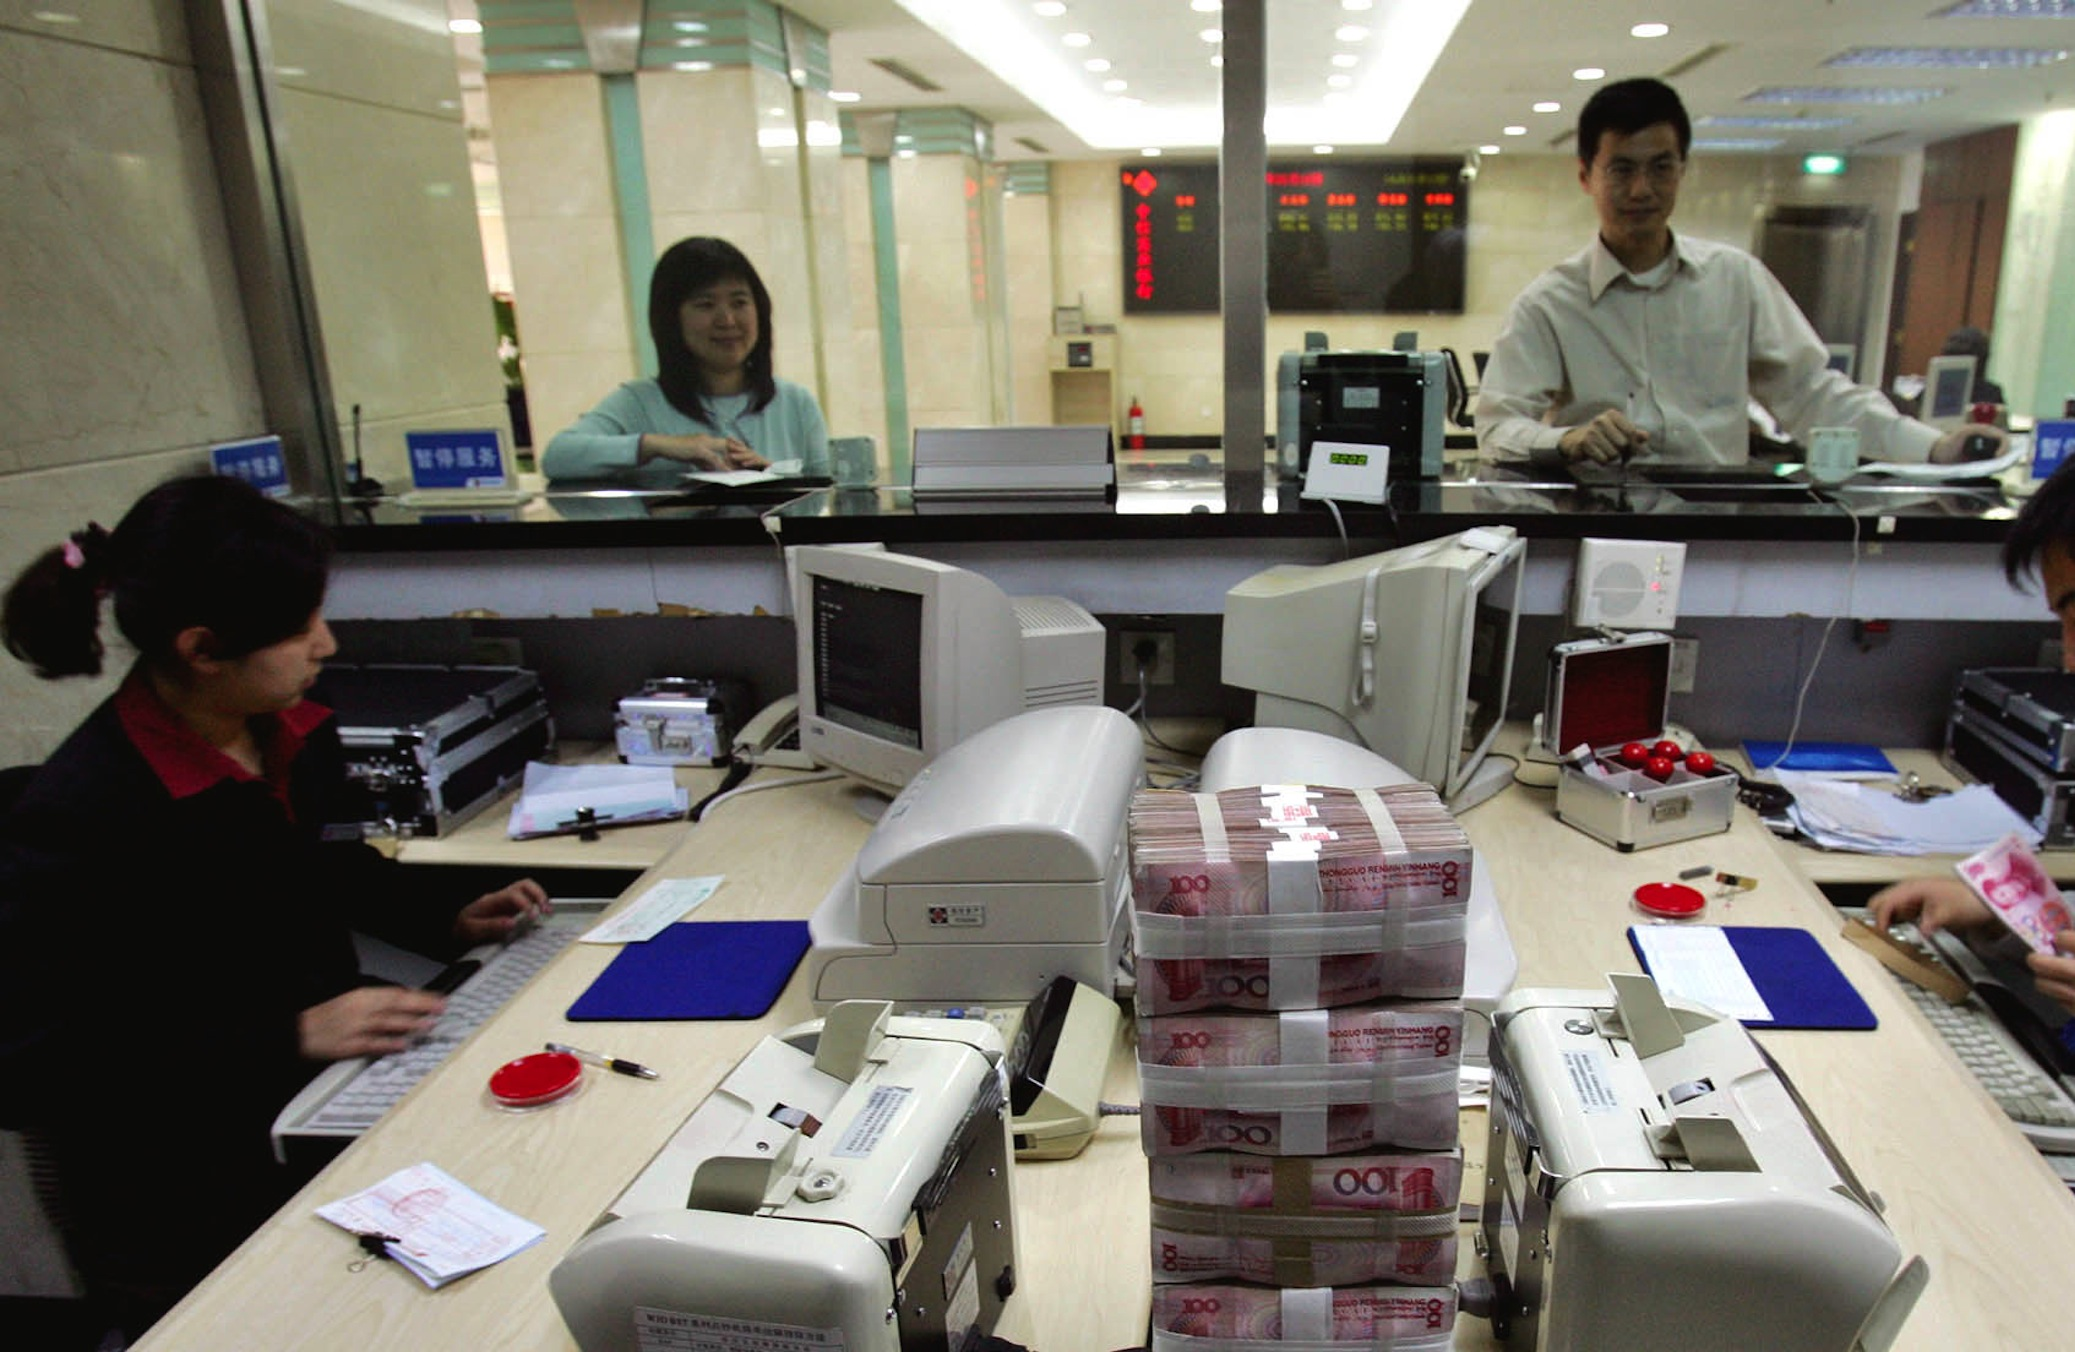 A Chinese bank employee counts 100 Yuan bills as a colleague takes care of a customer at a bank in Beijing Monday, April 18, 2005.  Given China's growing role as an export power, a decision by Beijing to let the Chinese currency rise in value against the U.S. dollar after 11 years of keeping it fixed at about 8.28 yuan per dollar could have myriad implications for consumers, manufacturers and government decision makers worldwide.